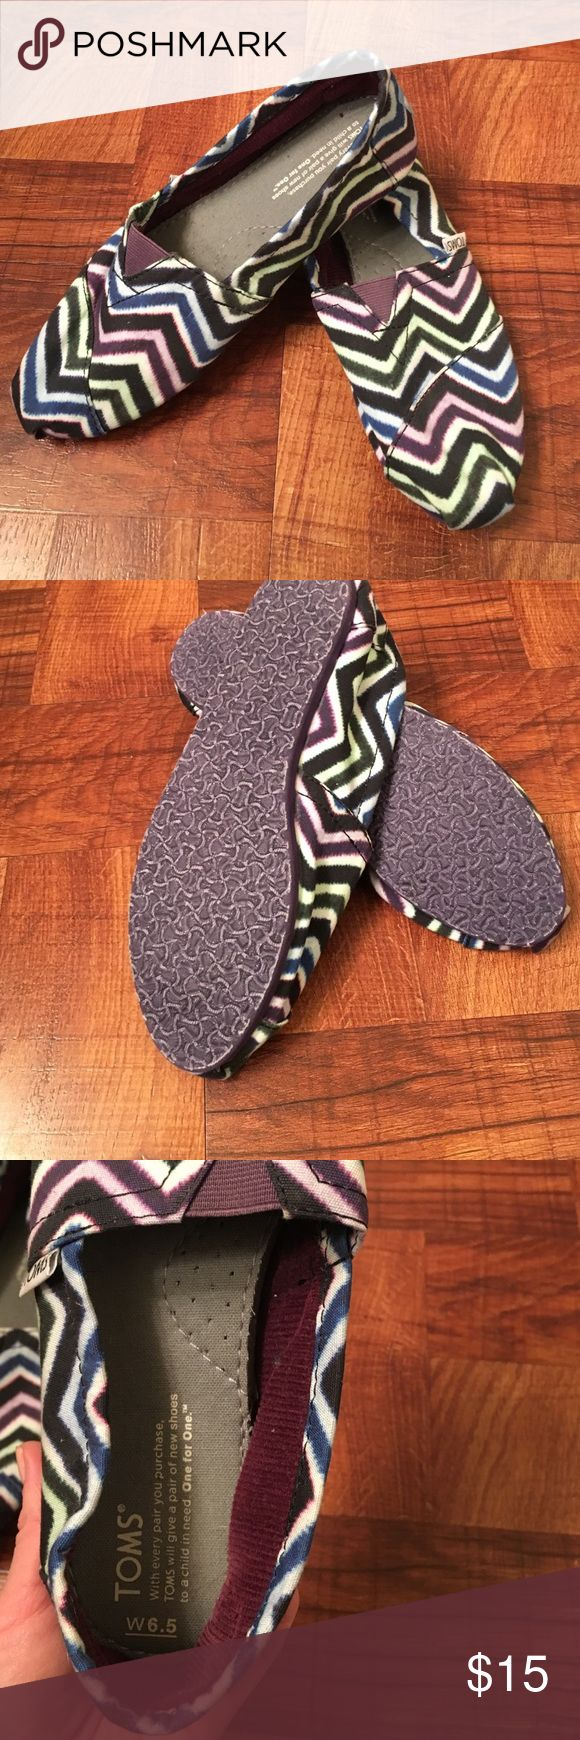 Chevron Toms Brand new never worn purple and multi colored toms TOMS Shoes Flats & Loafers